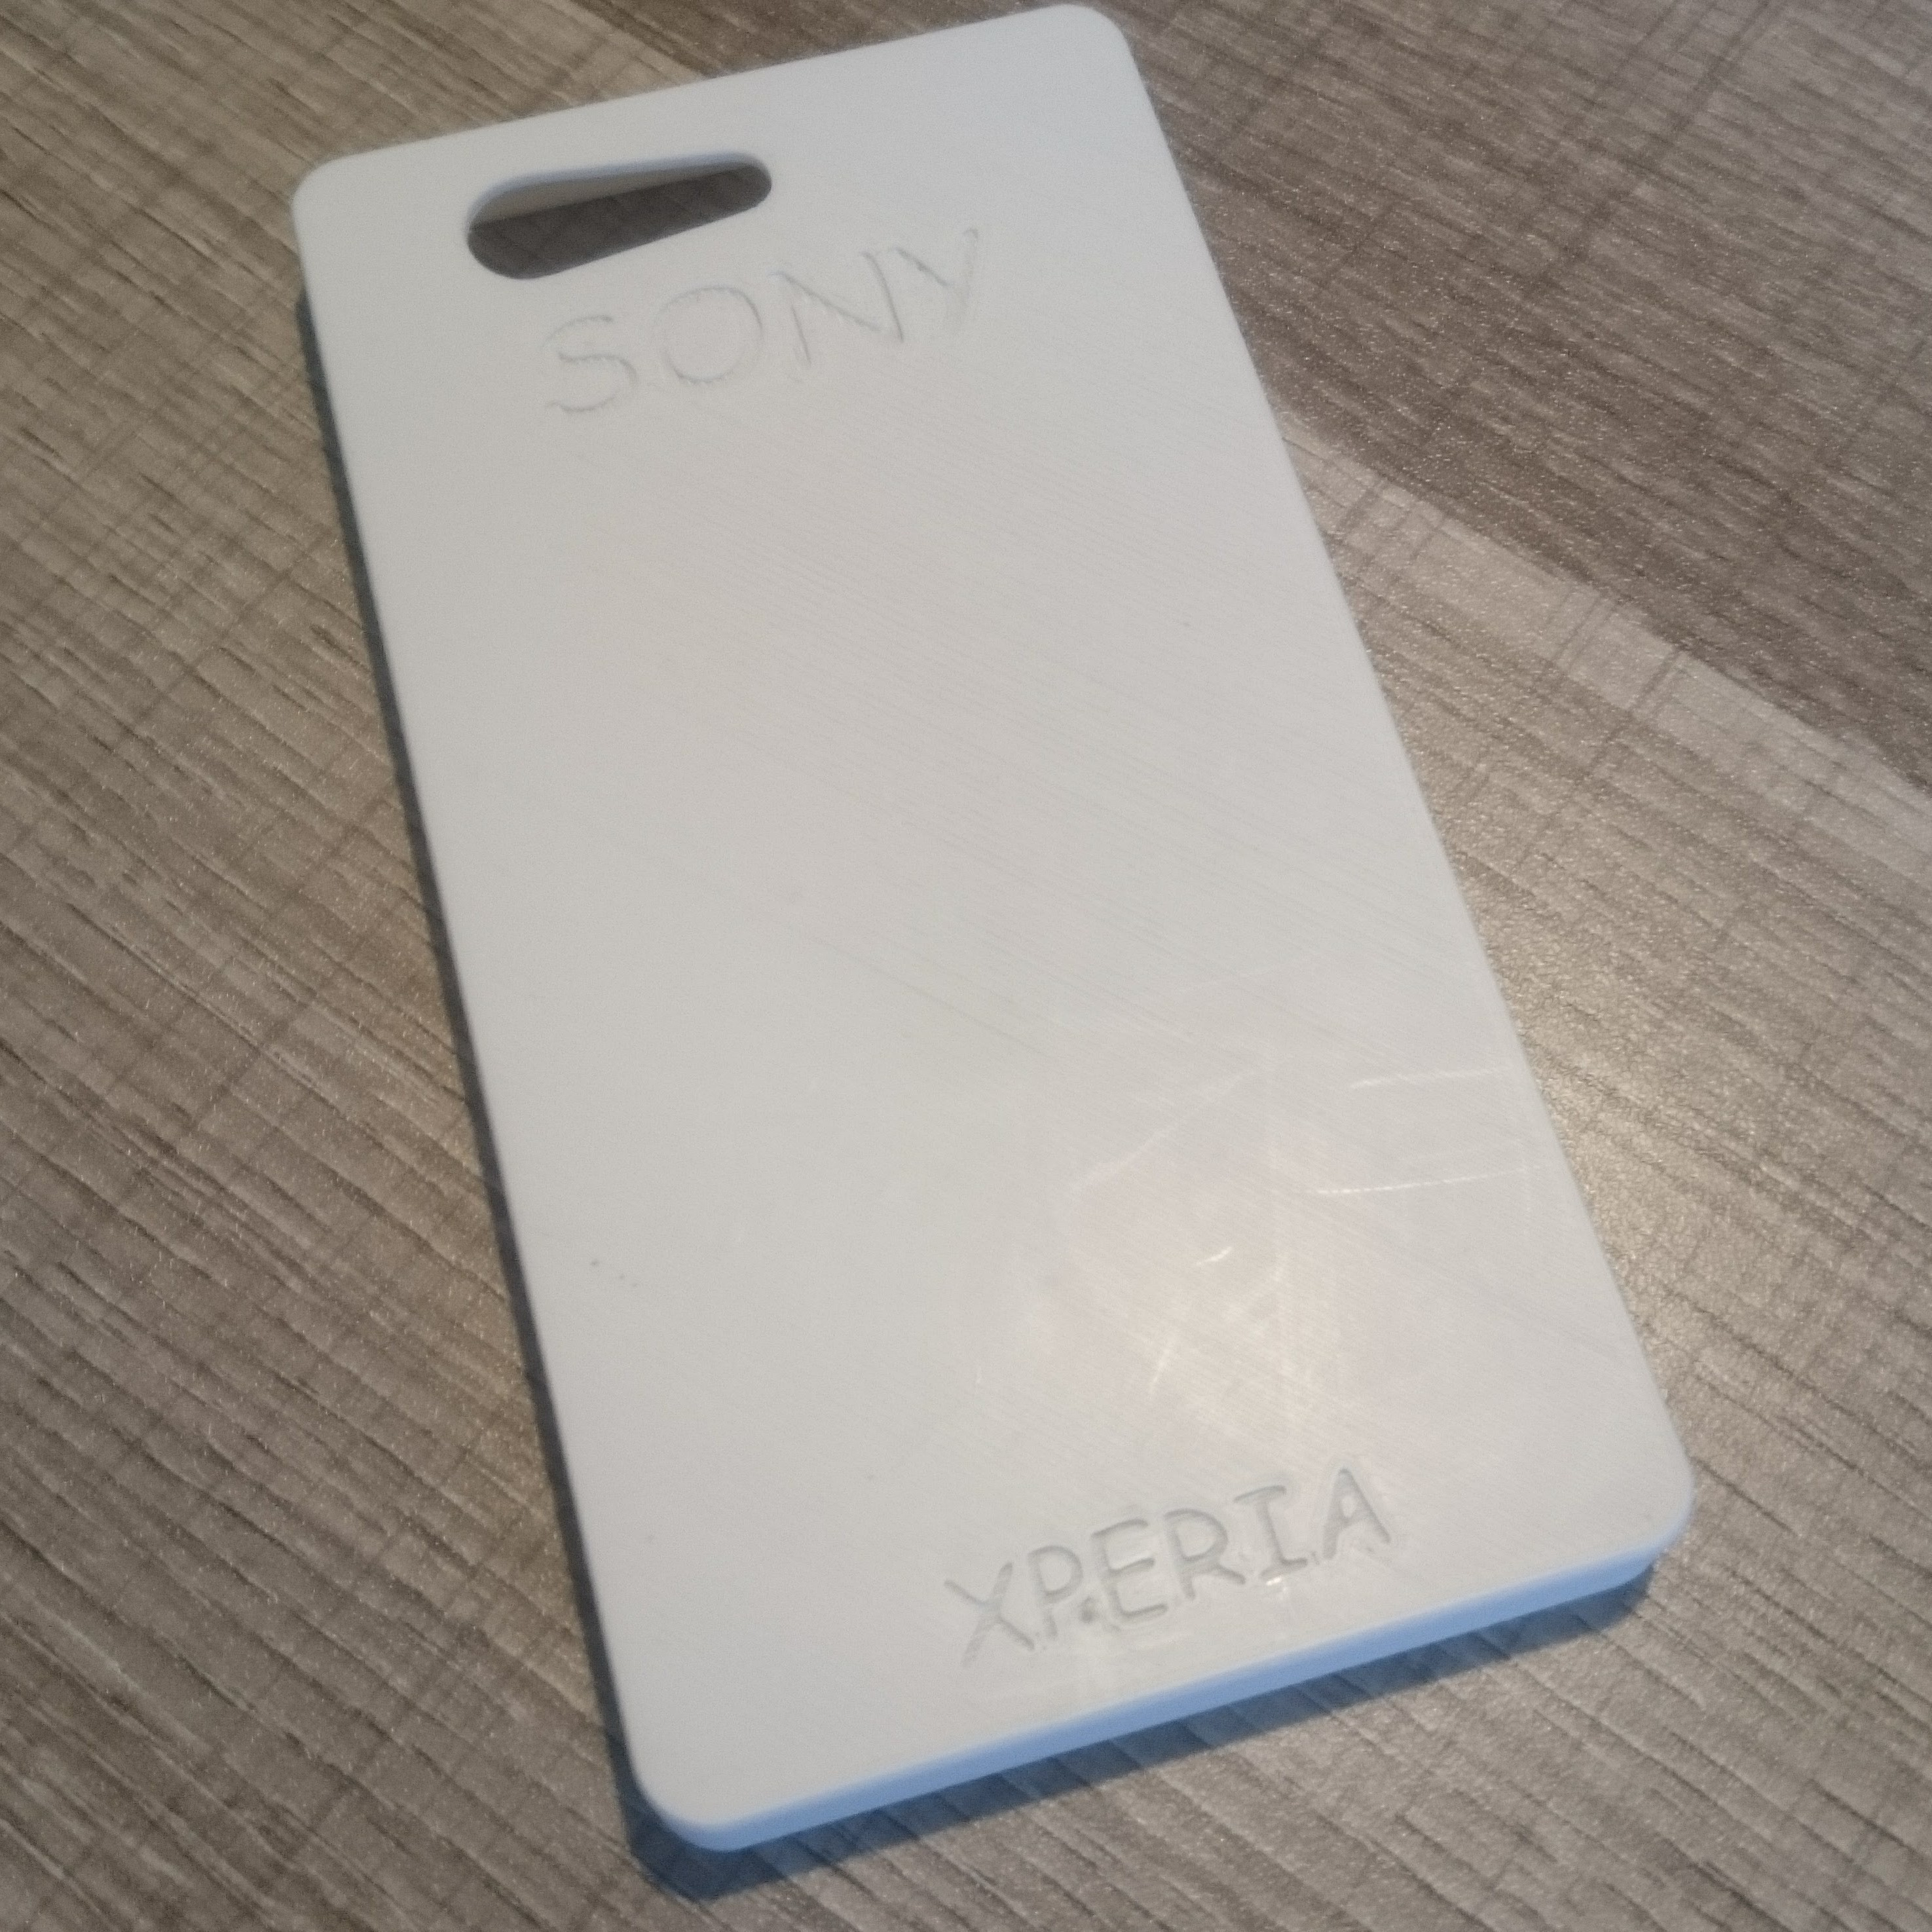 Coque Sony Z3 Compact 06.jpg Download free STL file Sony Z3 Compact Housing • 3D printer design, Ldom21